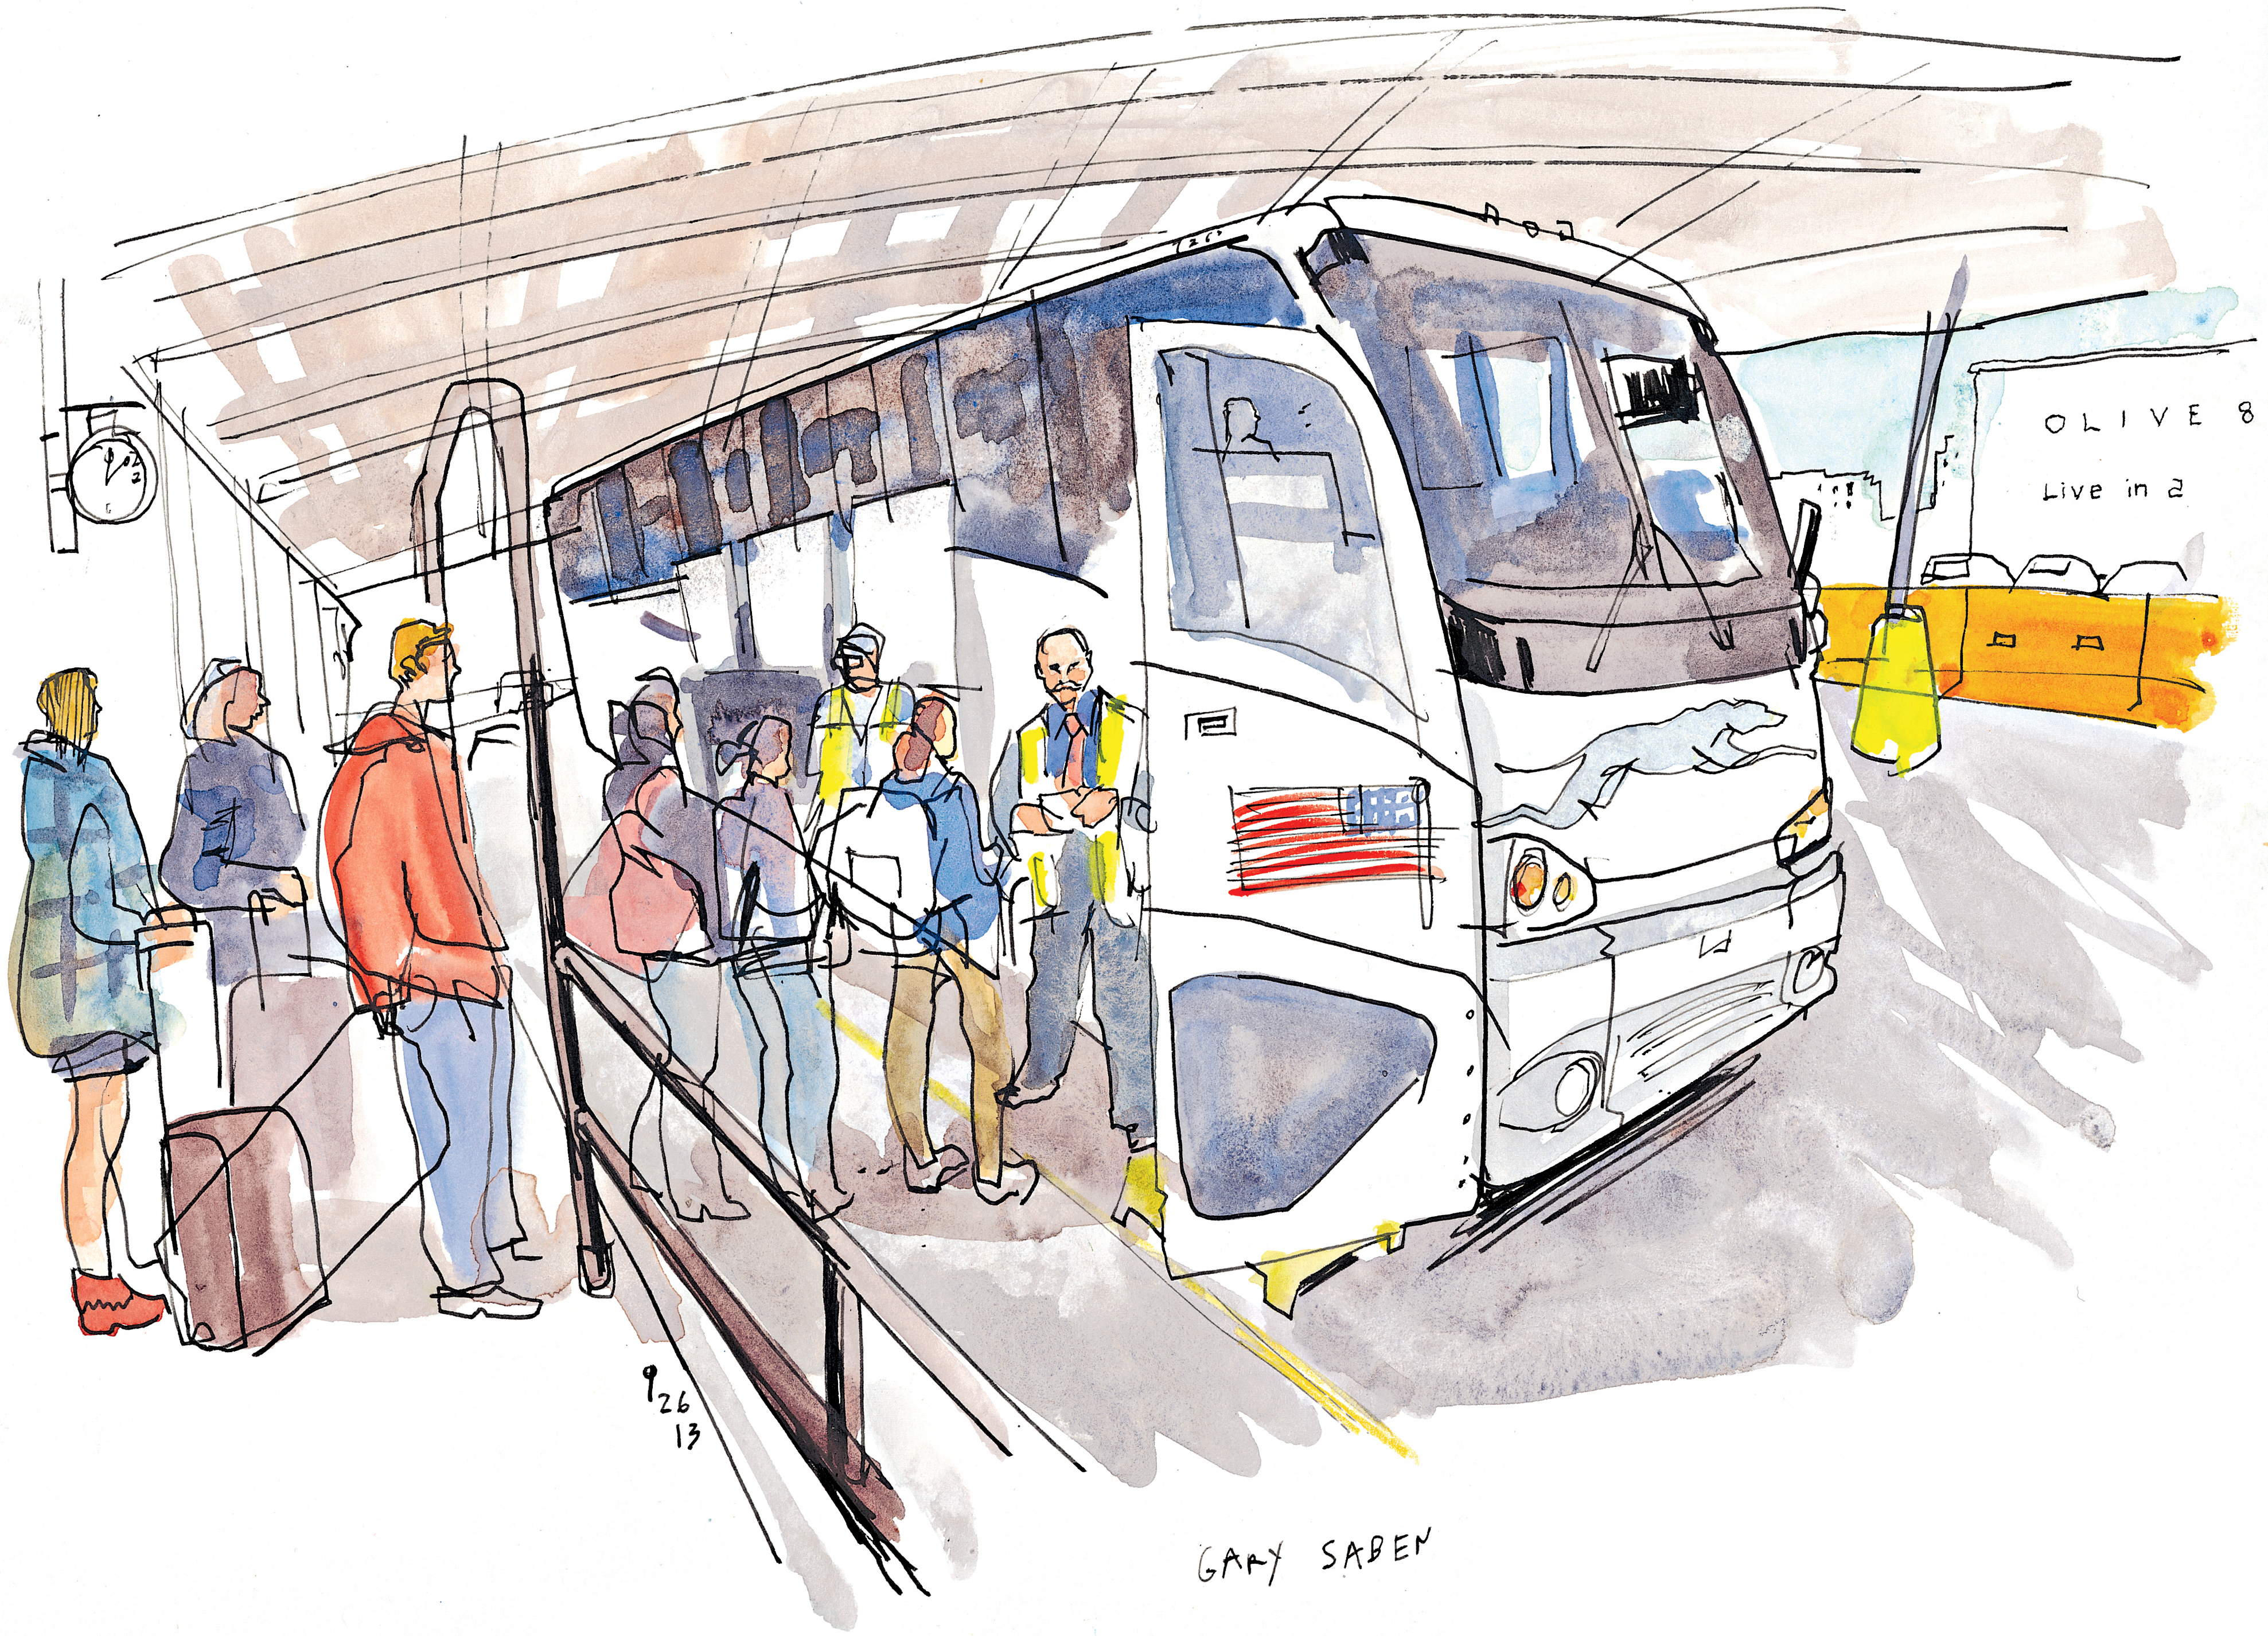 Drawn bud coach bus The End of Seattle station